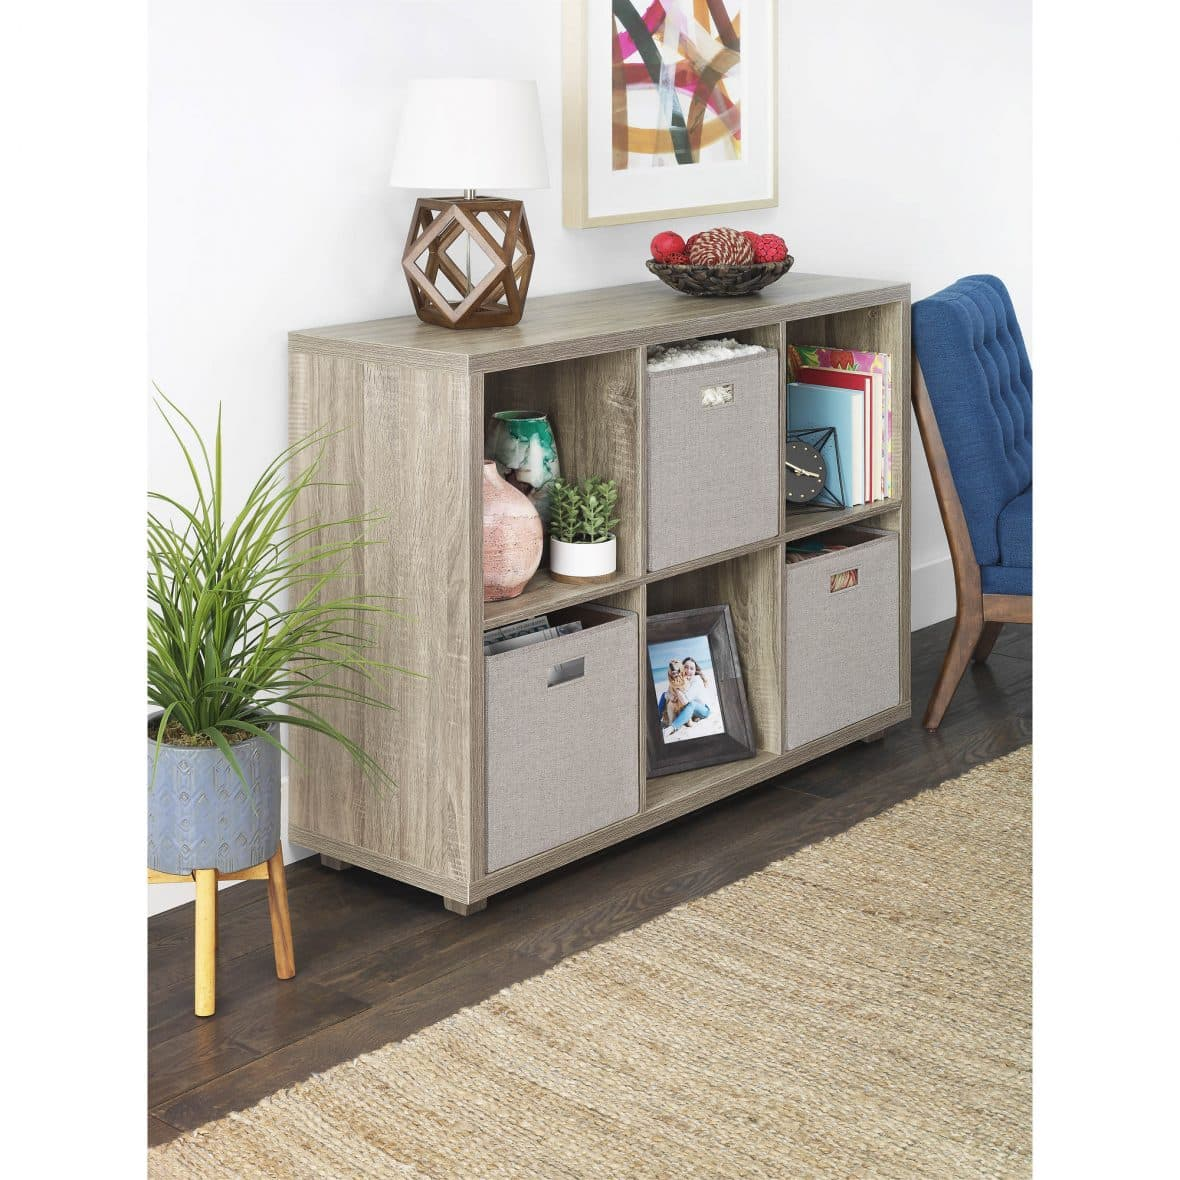 6 Section Cube Deluxe Organizer $59 99 | My BJs Wholesale Club